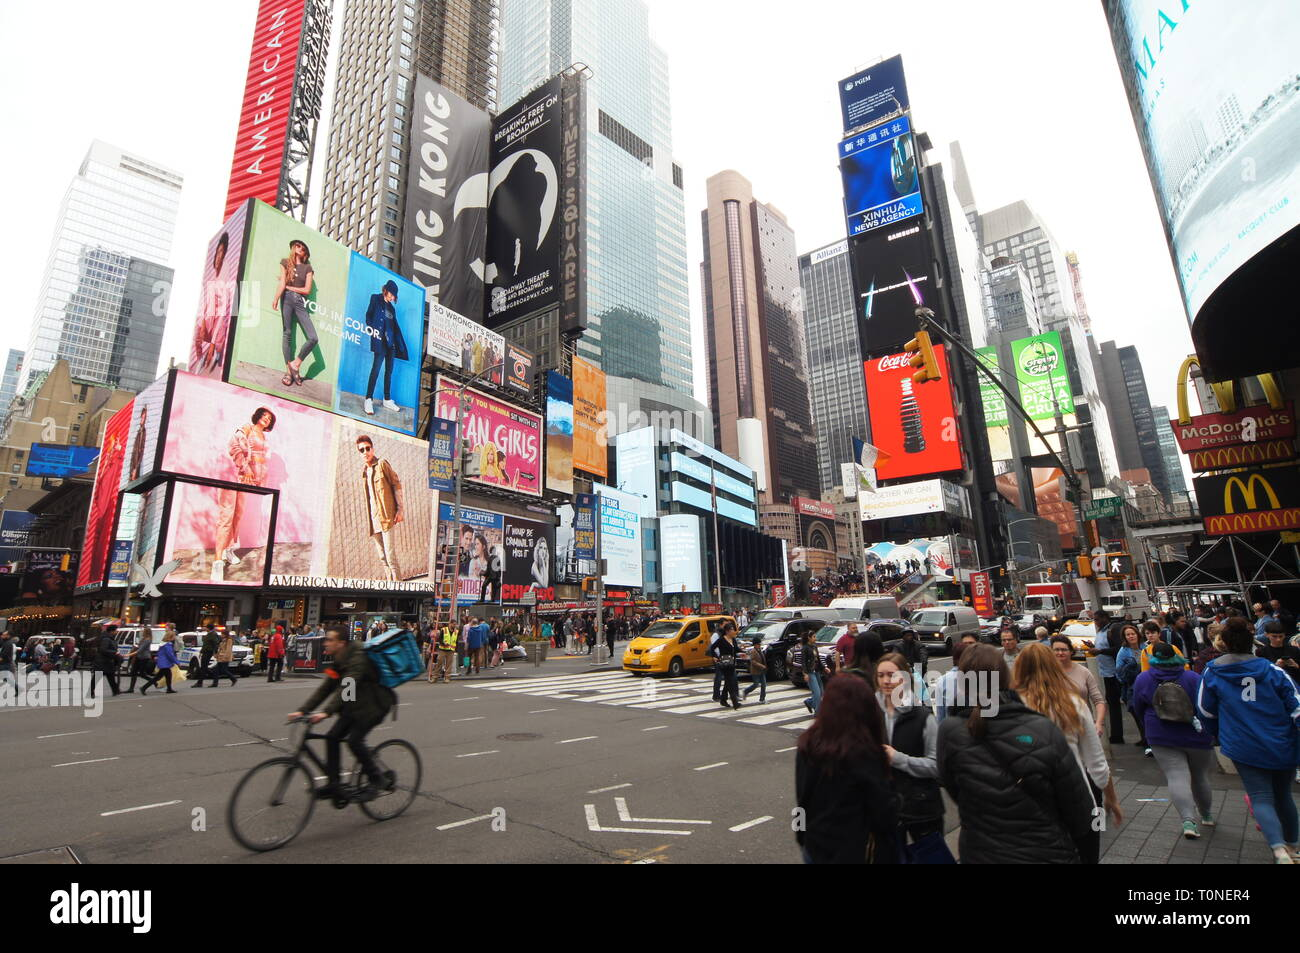 Times Square on West 46th Street, New York City, New York - Stock Image